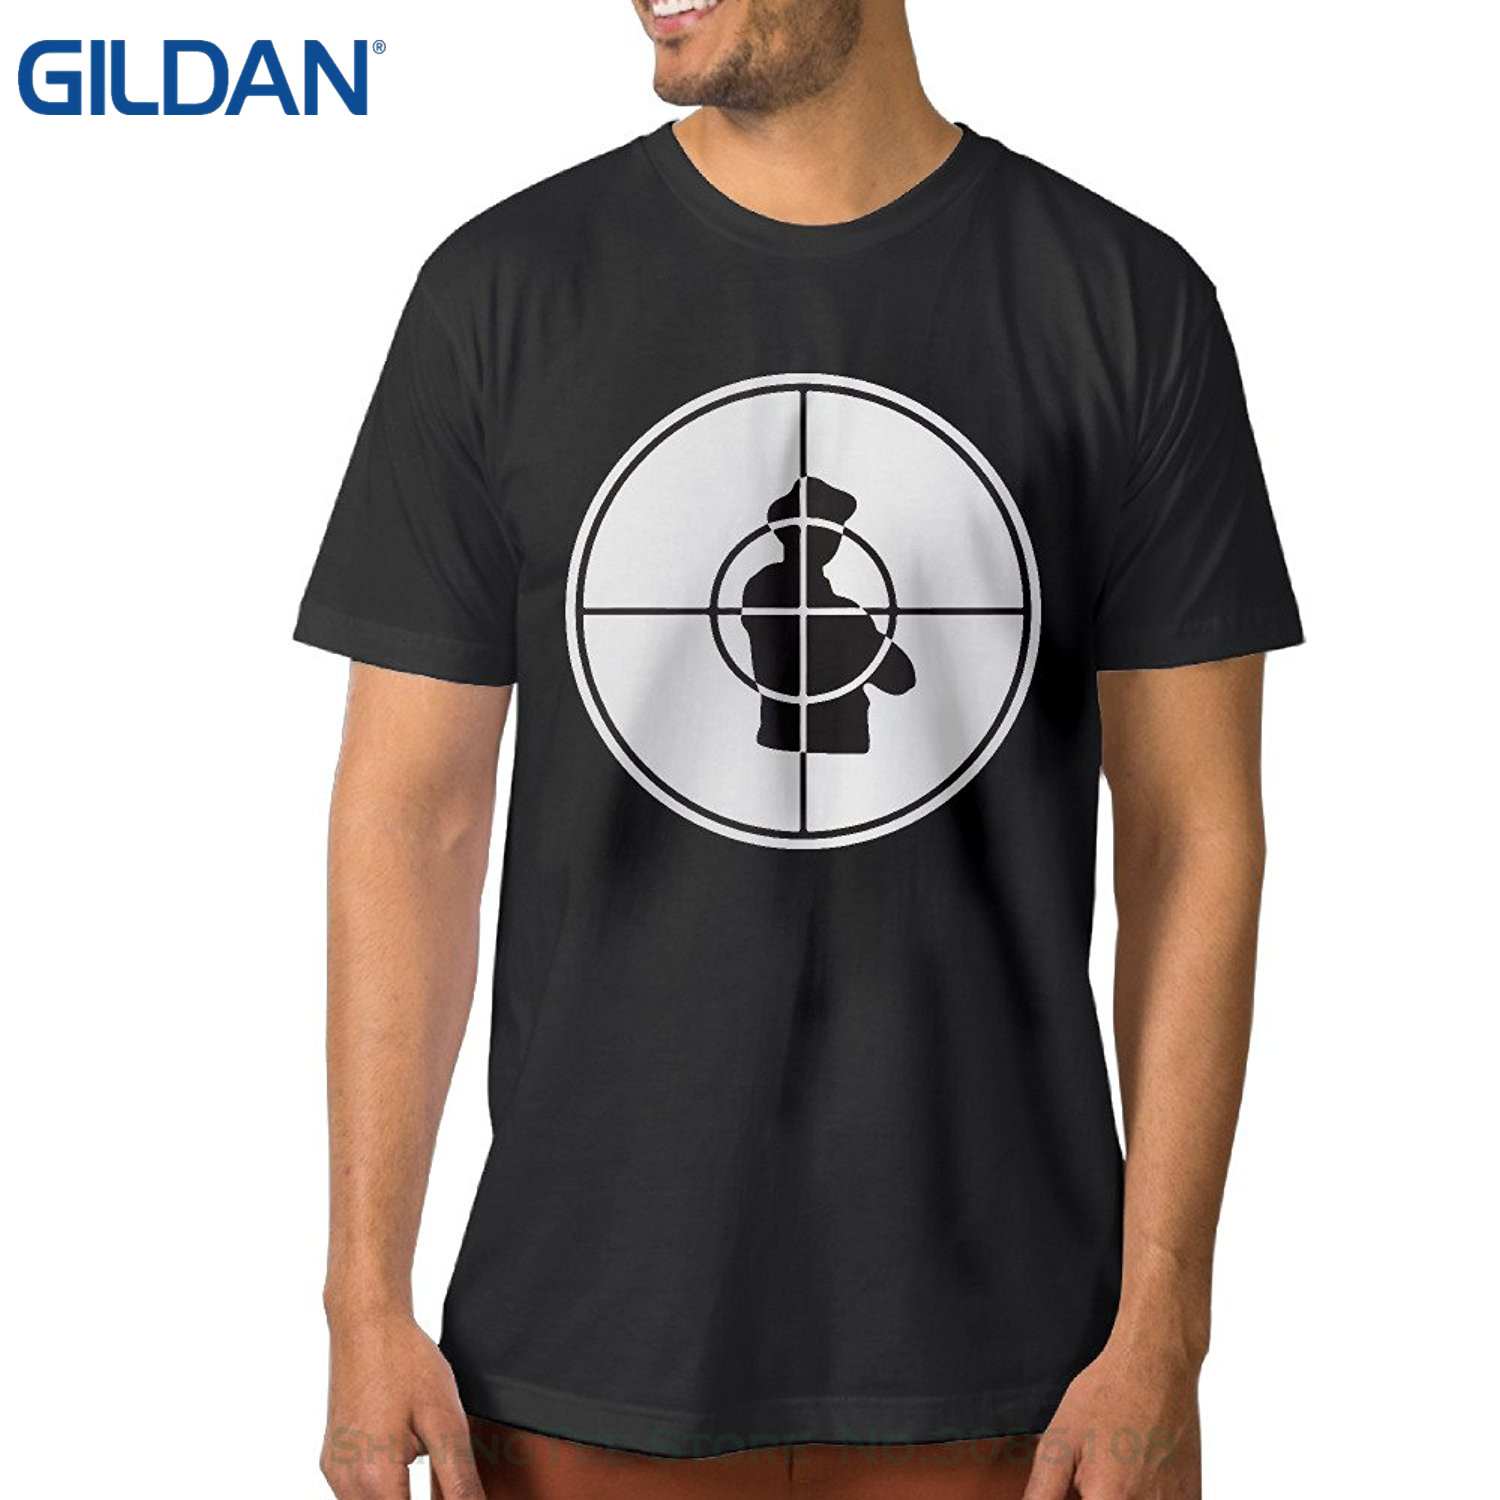 GILDAN Moda T-Shirt Slim Fit O-Boyun Public Enemy Rock Band Logo erkek Pamuk Tee Gömlek